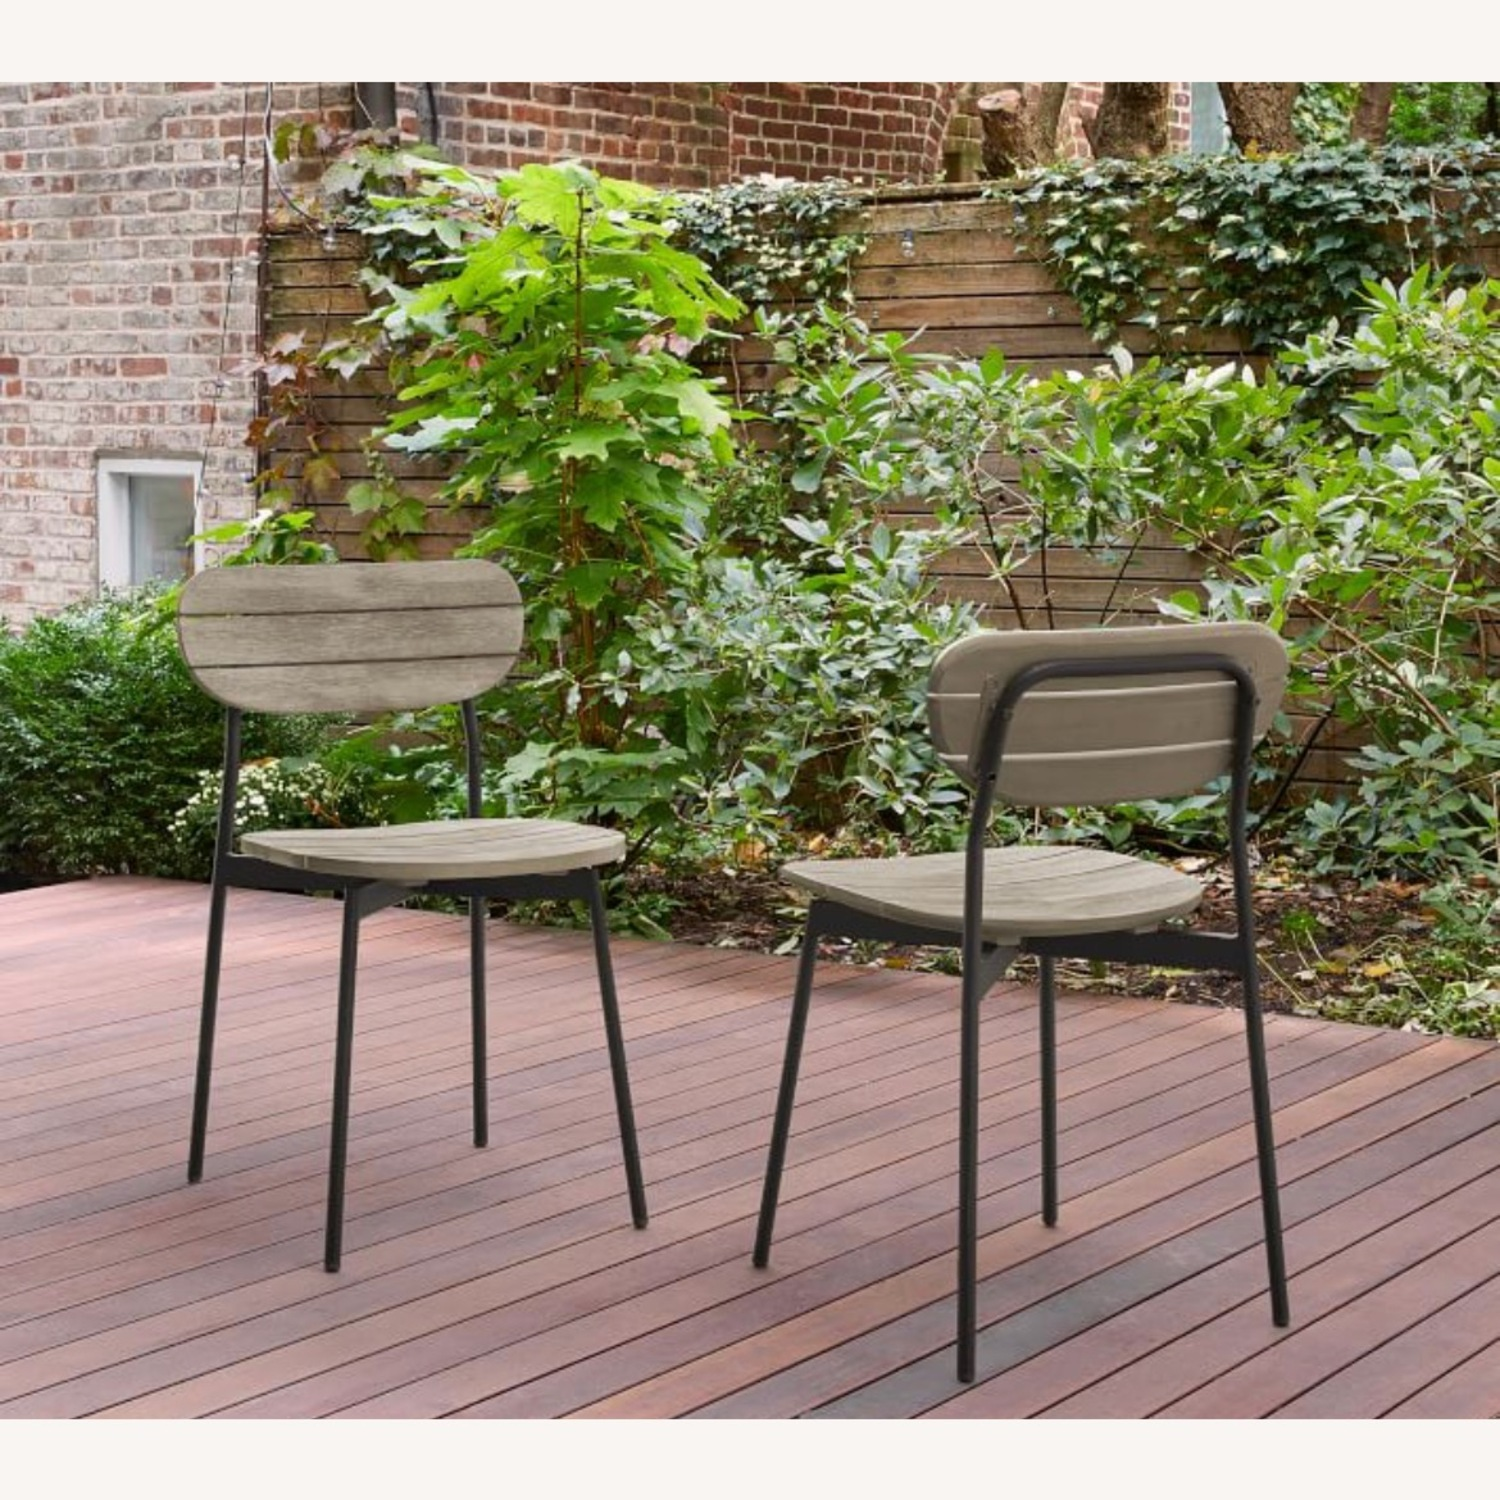 West Elm Frame Outdoor Set of 2 Dining Chairs - image-3